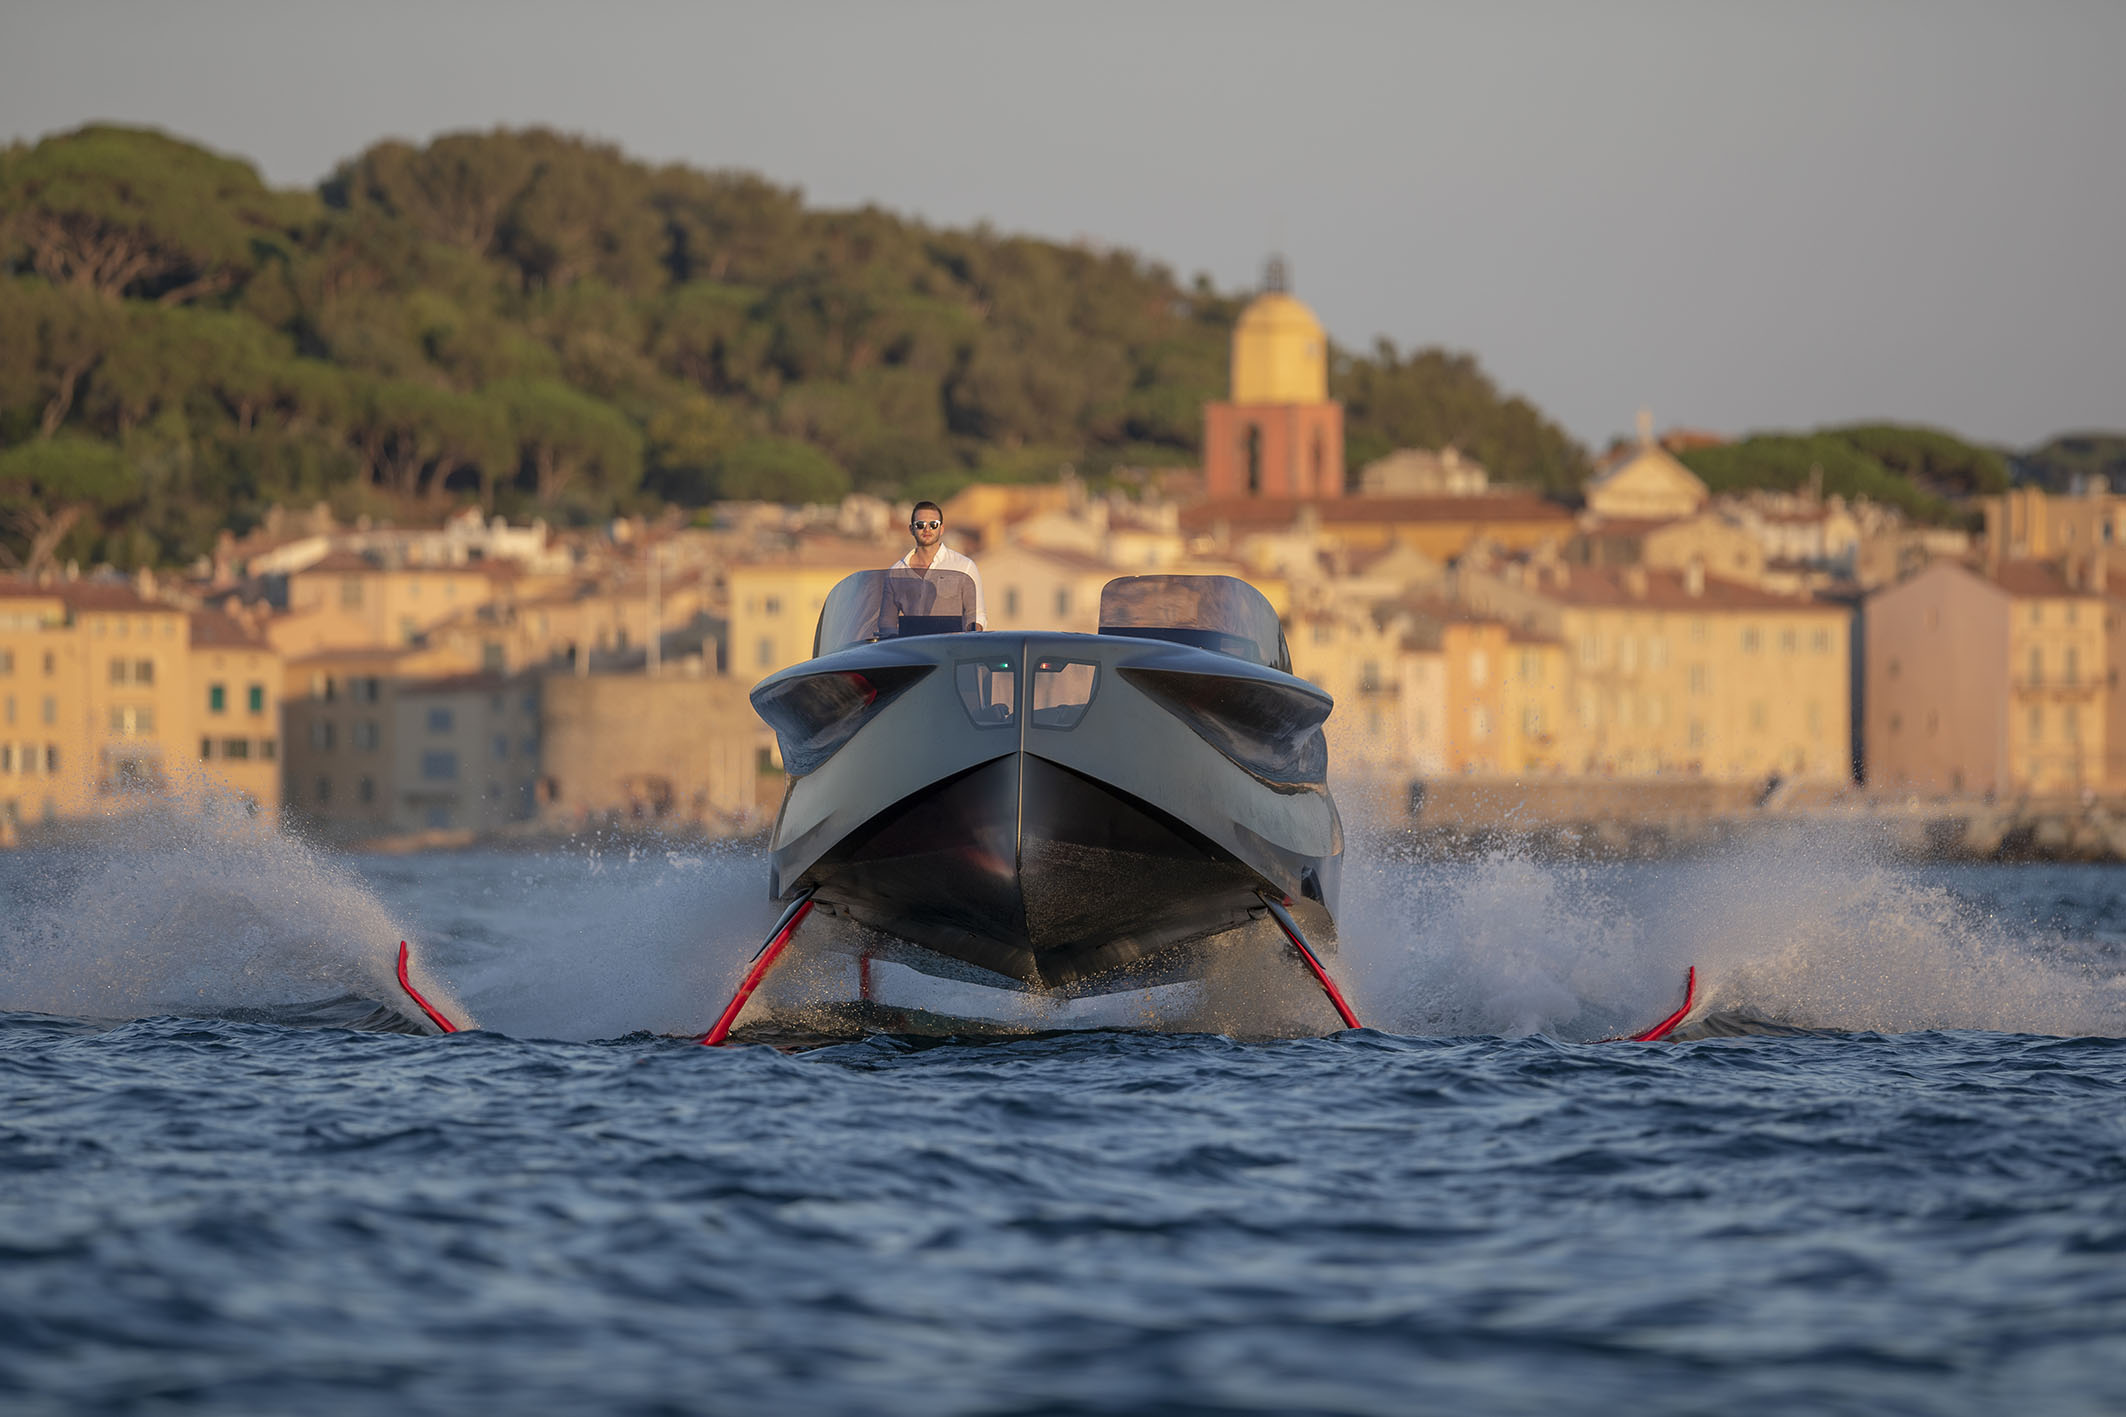 The FOILER - Flying Yacht by ENATA